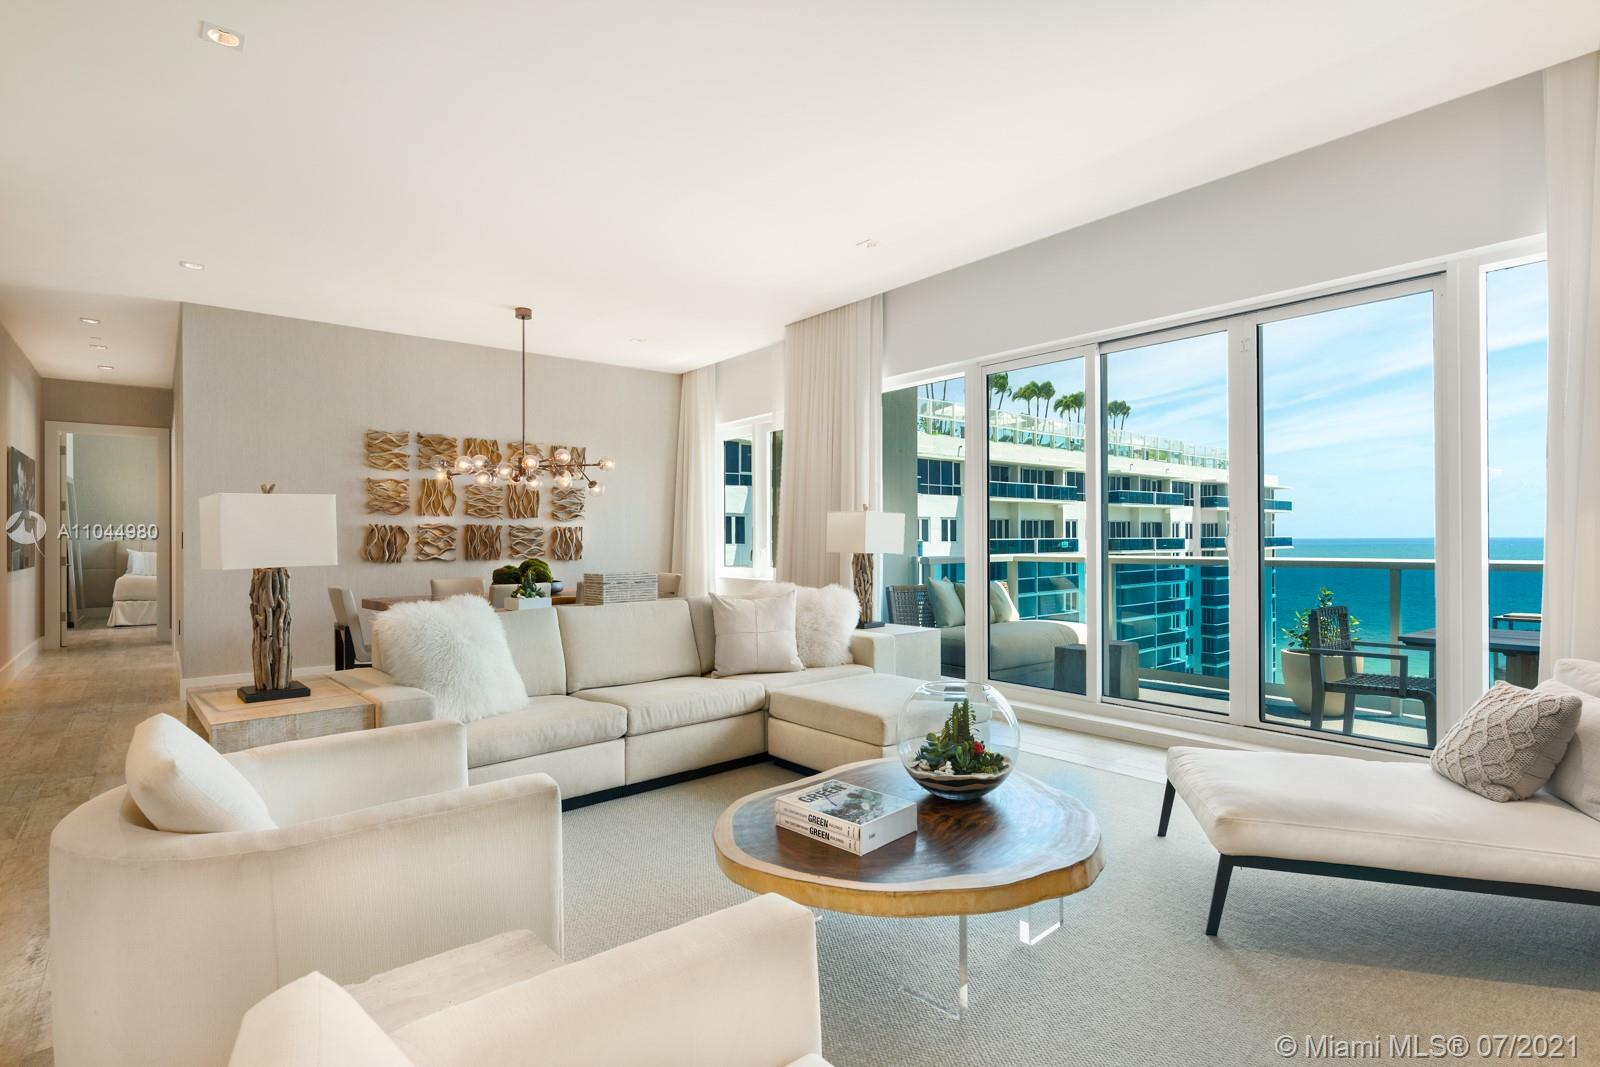 Enjoy the sounds of the ocean in your direct ocean view trophy Penthouse located at 1 Hotel & Homes, South Beach!Featuring lavish home elements, delivered fully furnished by Brazilian designer Debora Aguiar.Bring the outside in, floor to ceiling sliding doors make this spacious 5 bed + maids quarters, 4.5 baths w/ 2,792 sqft. seem endless.Experience hotel living with access to 14,000 sqft gym, Bamford Haybarn SPA, Restaurants, Rooftop pool & more!